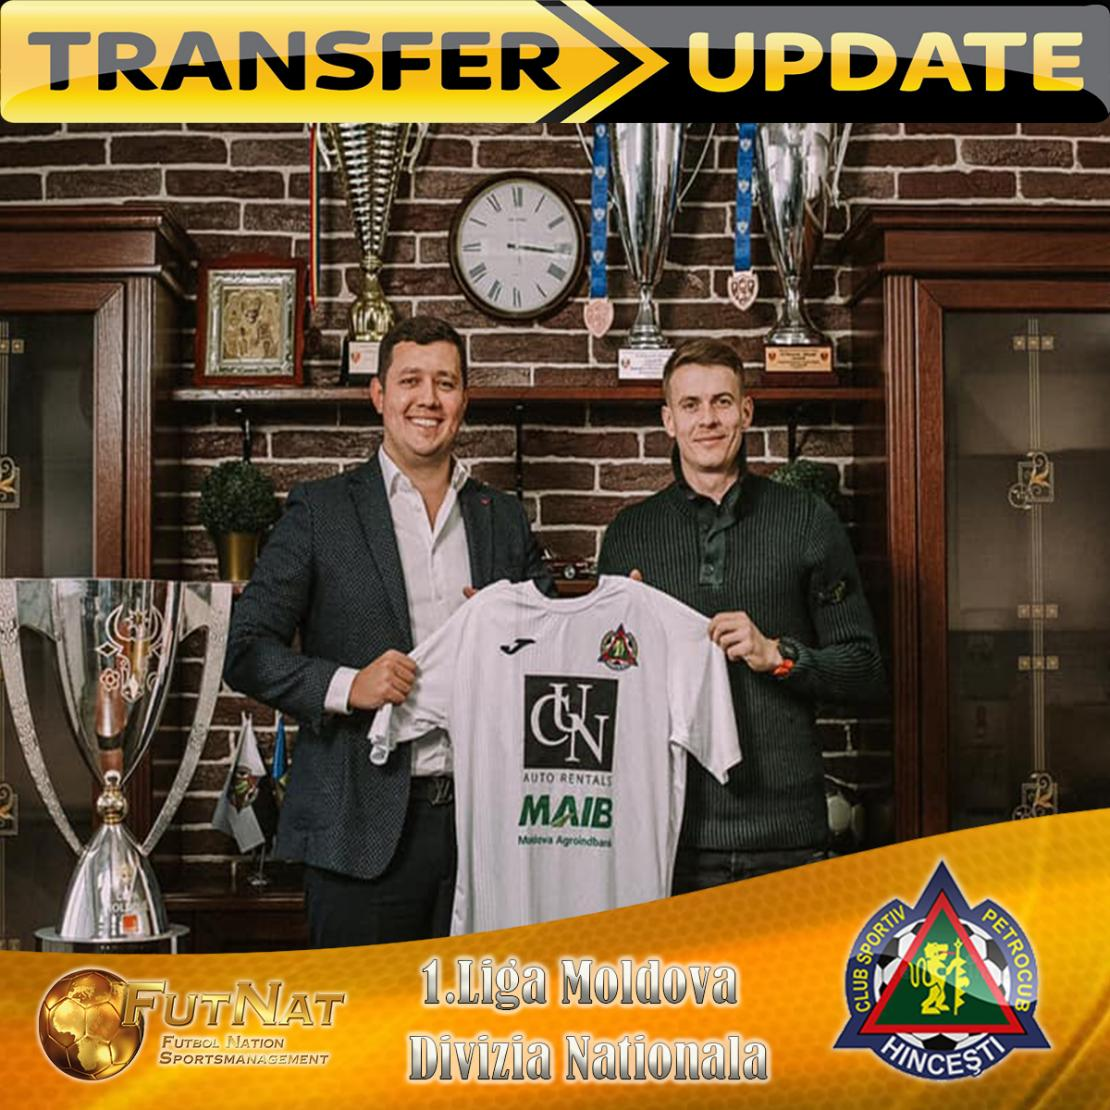 CONSTANTIN SANDU RETURNS TO FC PETROCUB